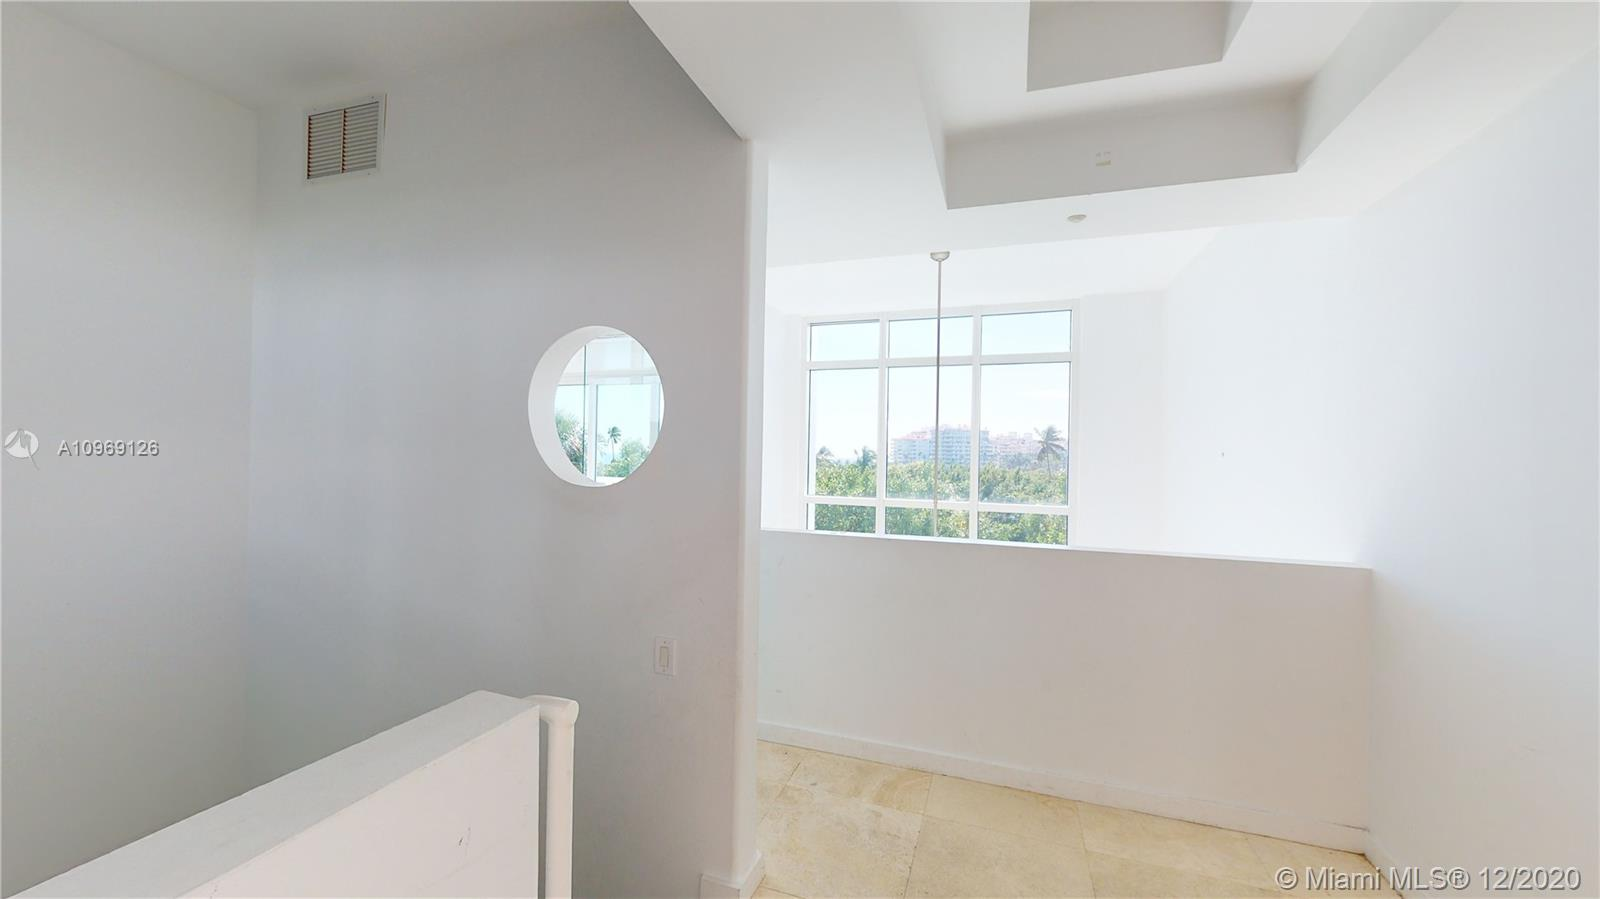 Amazing opportunity to own a Townhouse at The Continuum. Enjoy completely privacy for a great price in this beautiful 3 bed rooms 3.5 bathrooms.  18 foot ceilings in living area with lots of natural light from the southeast exposure sunrises.  Ocean view from entrance and master bedroom and direct access from your own garage.  A must see!